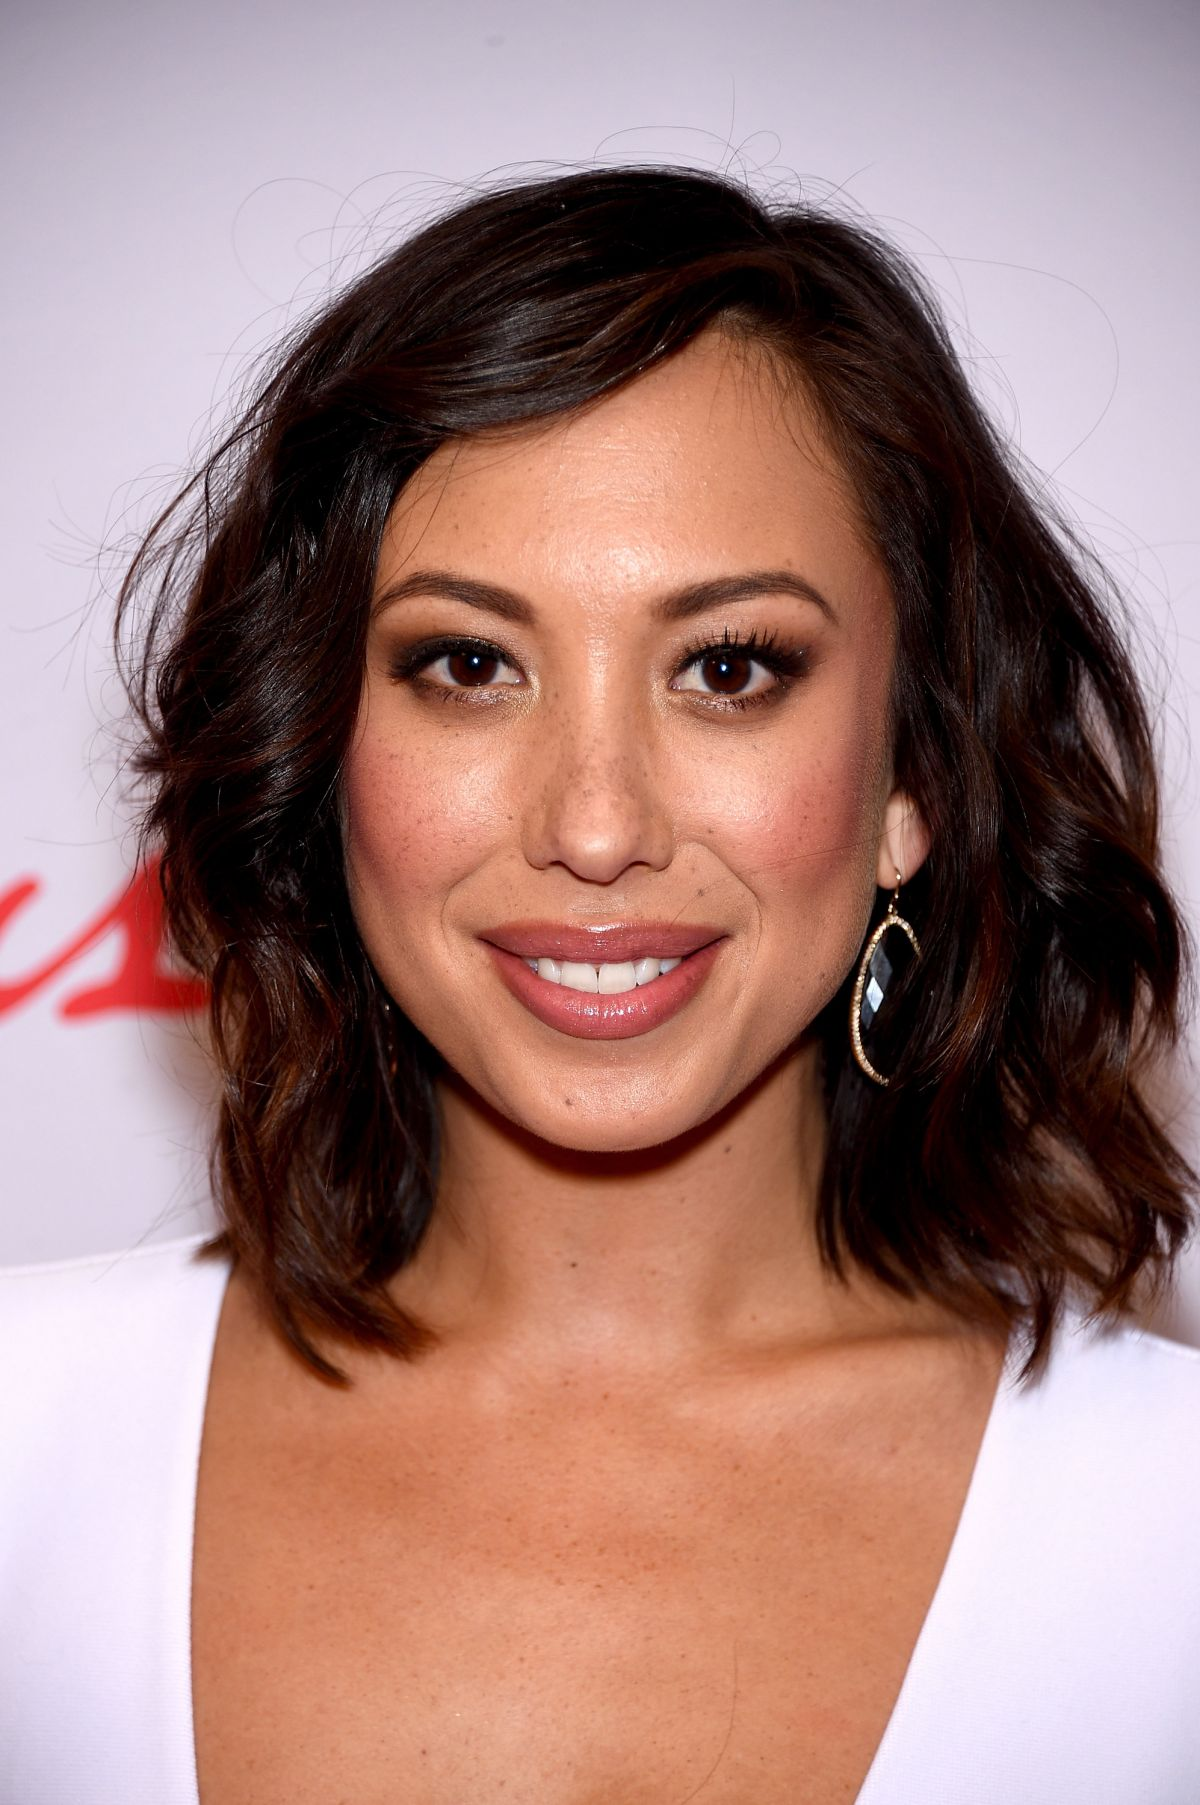 CHERYL BURKE at Red Nose Day Charity Event in New York ... Cheryl Burke